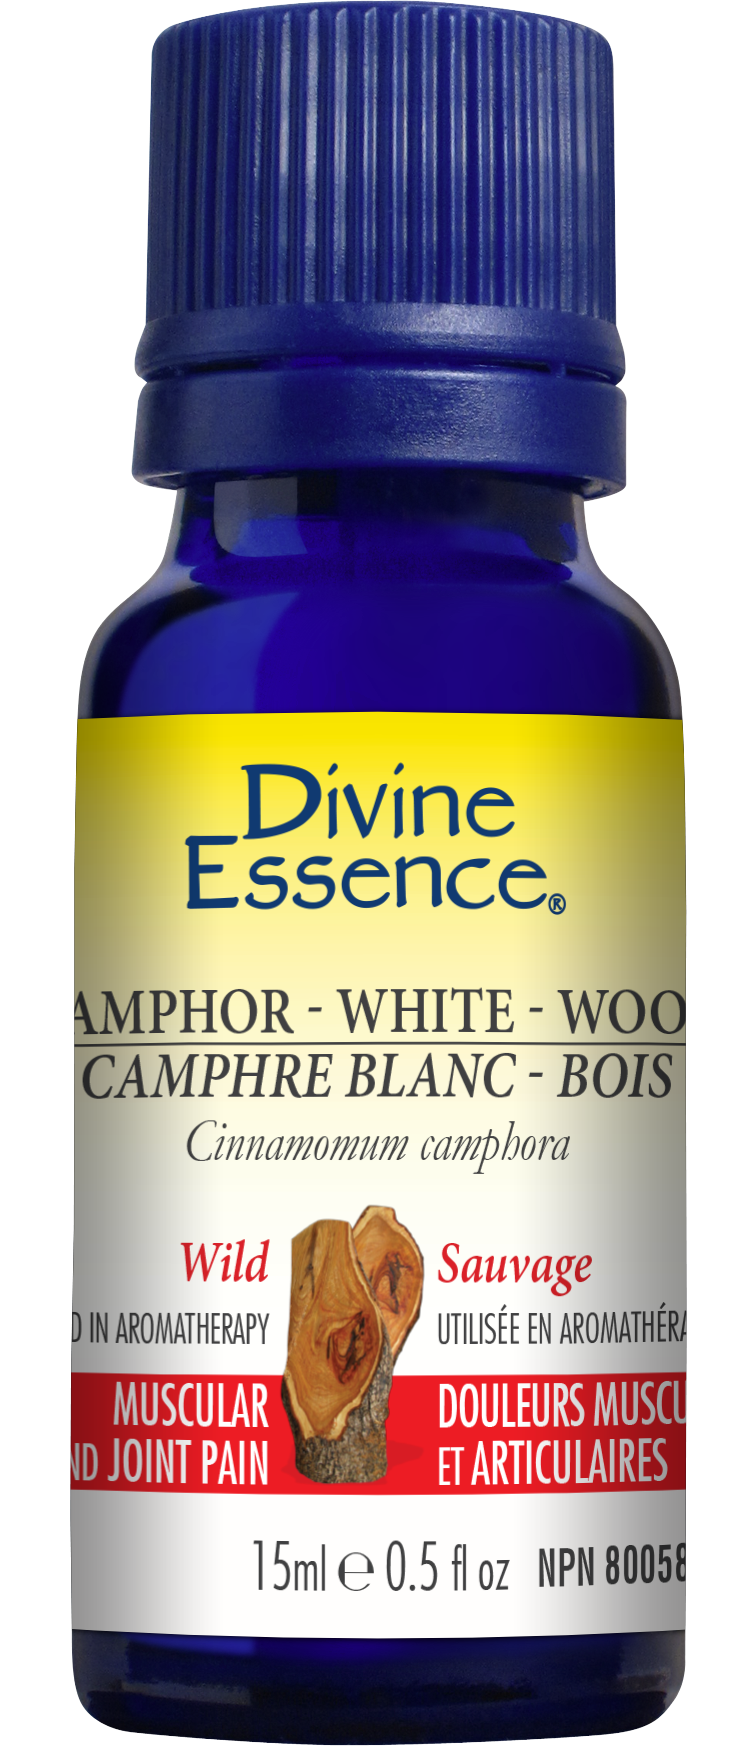 Camphor - White - Wood 15ml